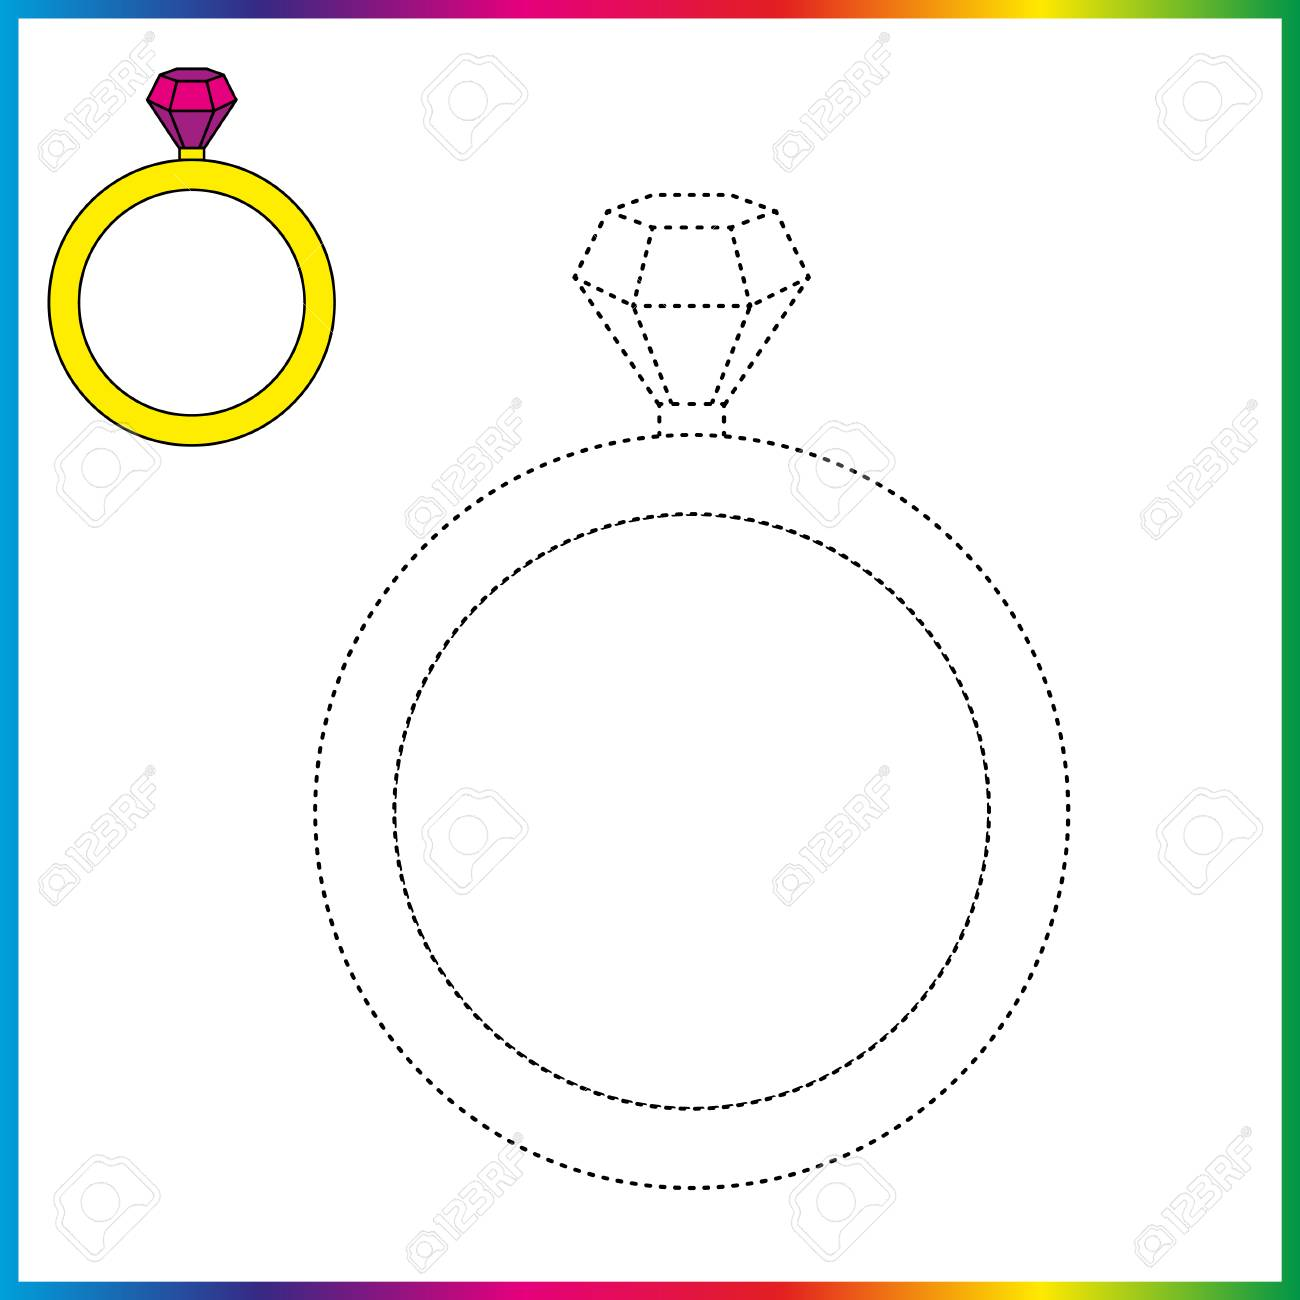 Diamond Ring Connect The Dots And Coloring Page Worksheet